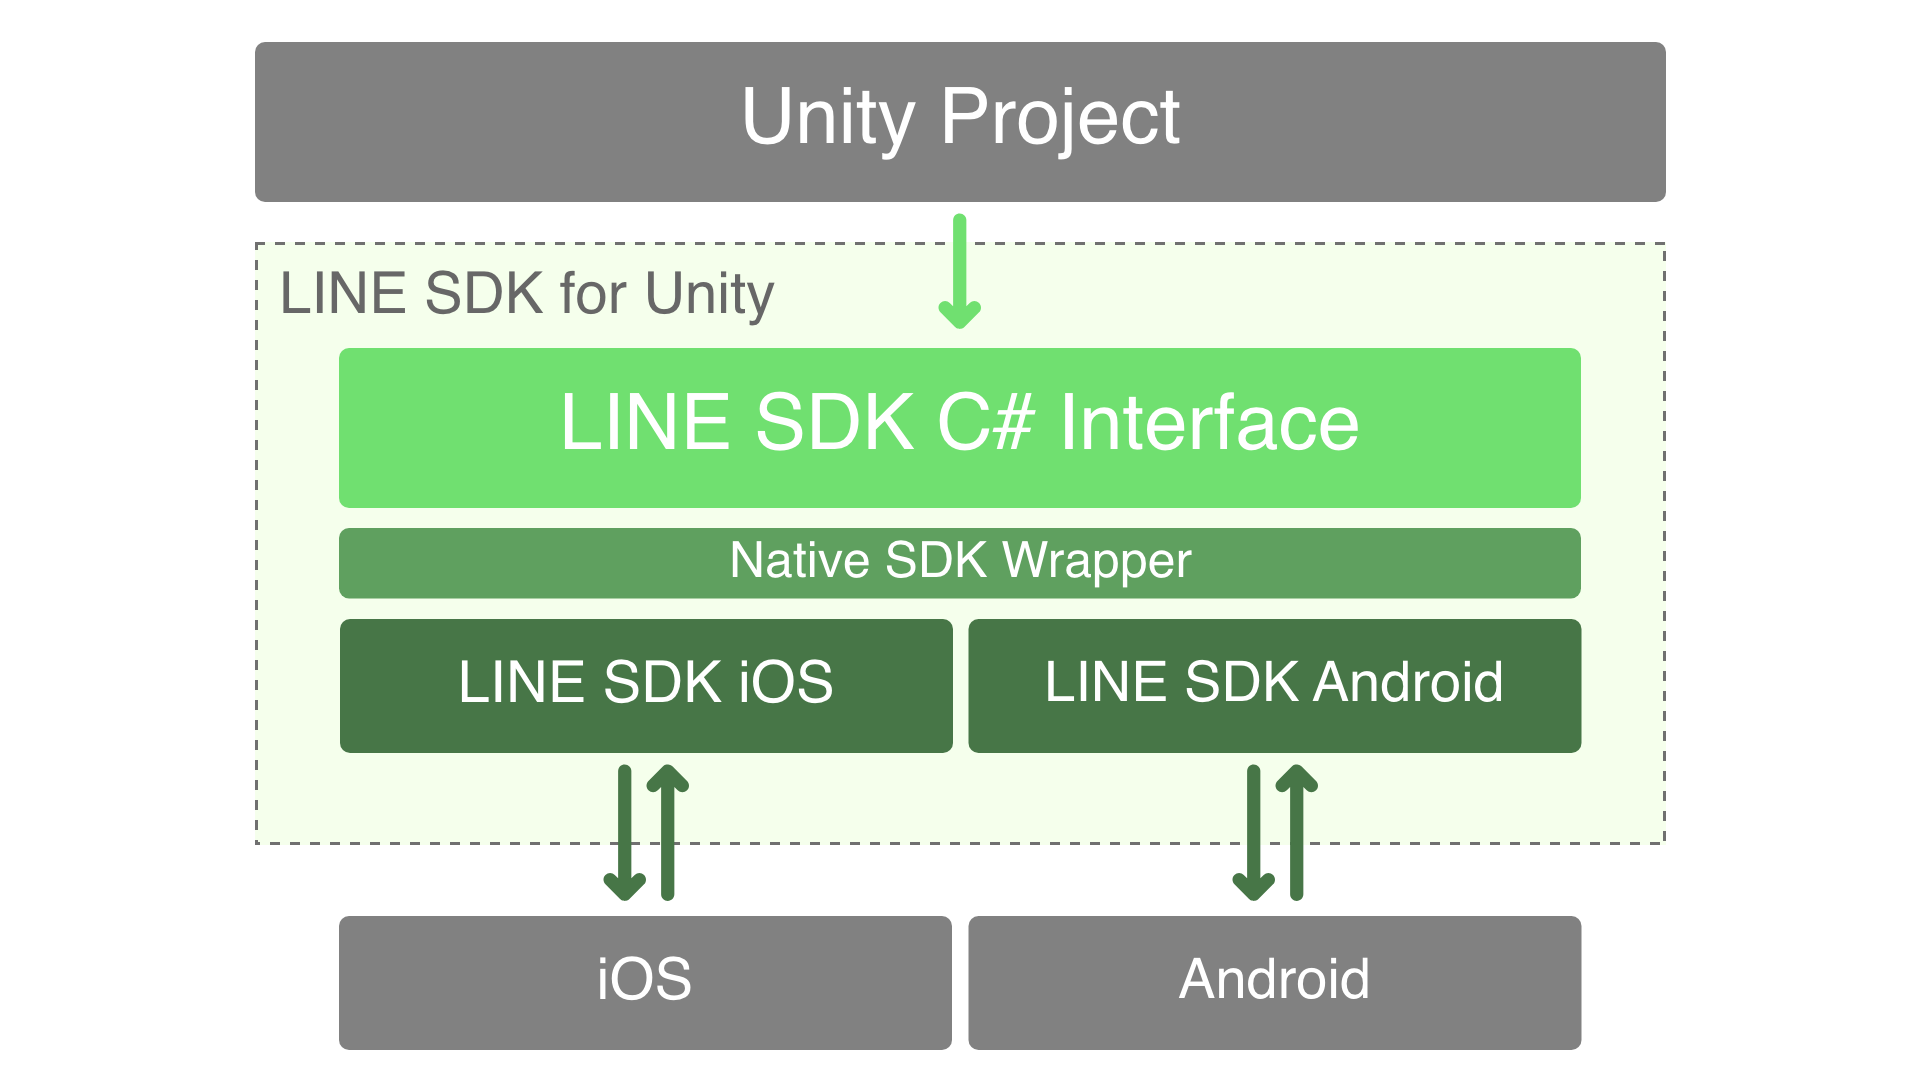 Wrapping a native SDK for Unity: our challenges and choices